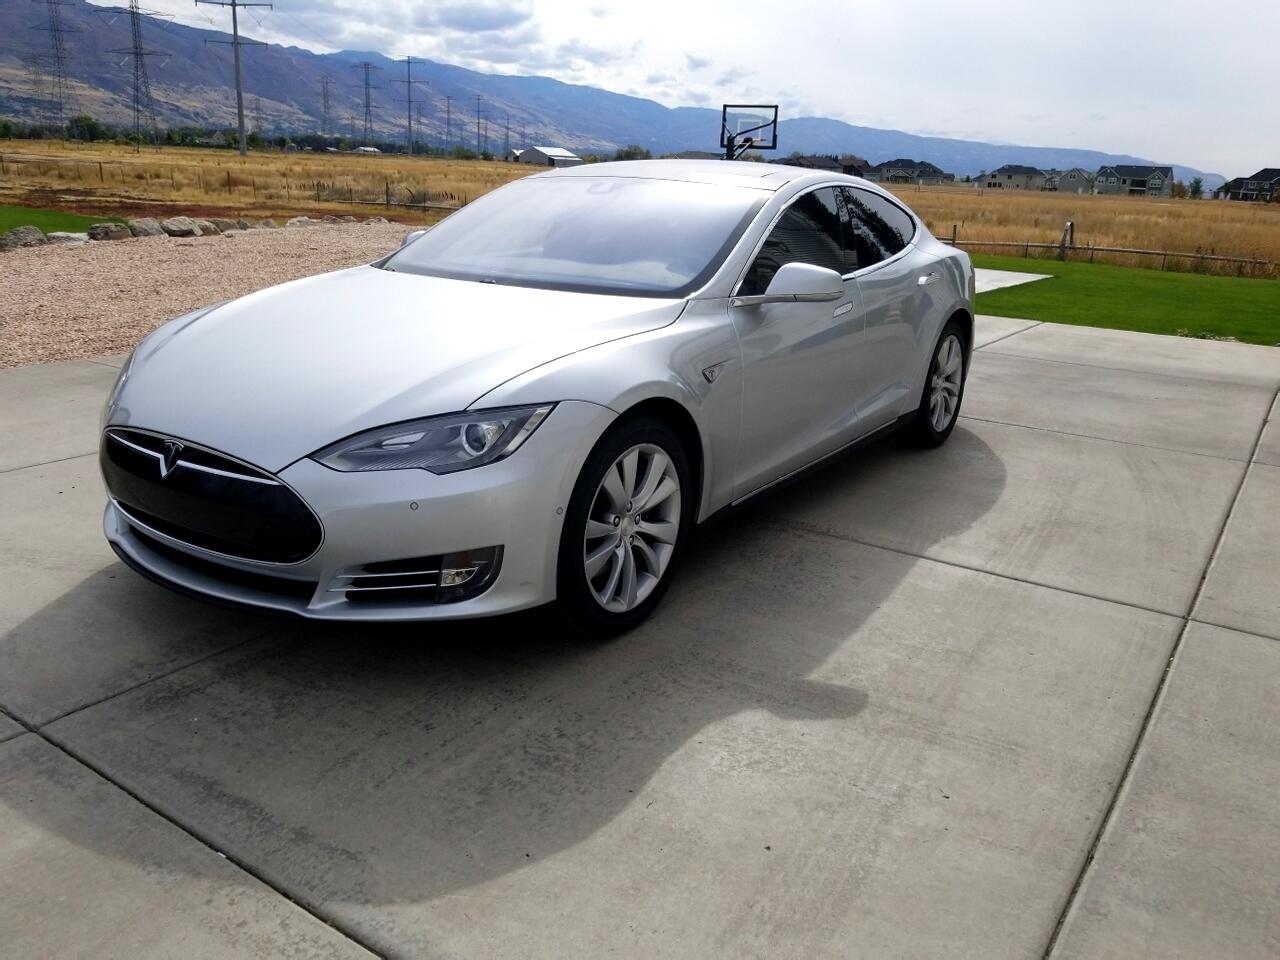 2015 Tesla Model S 4dr Sdn AWD 85D